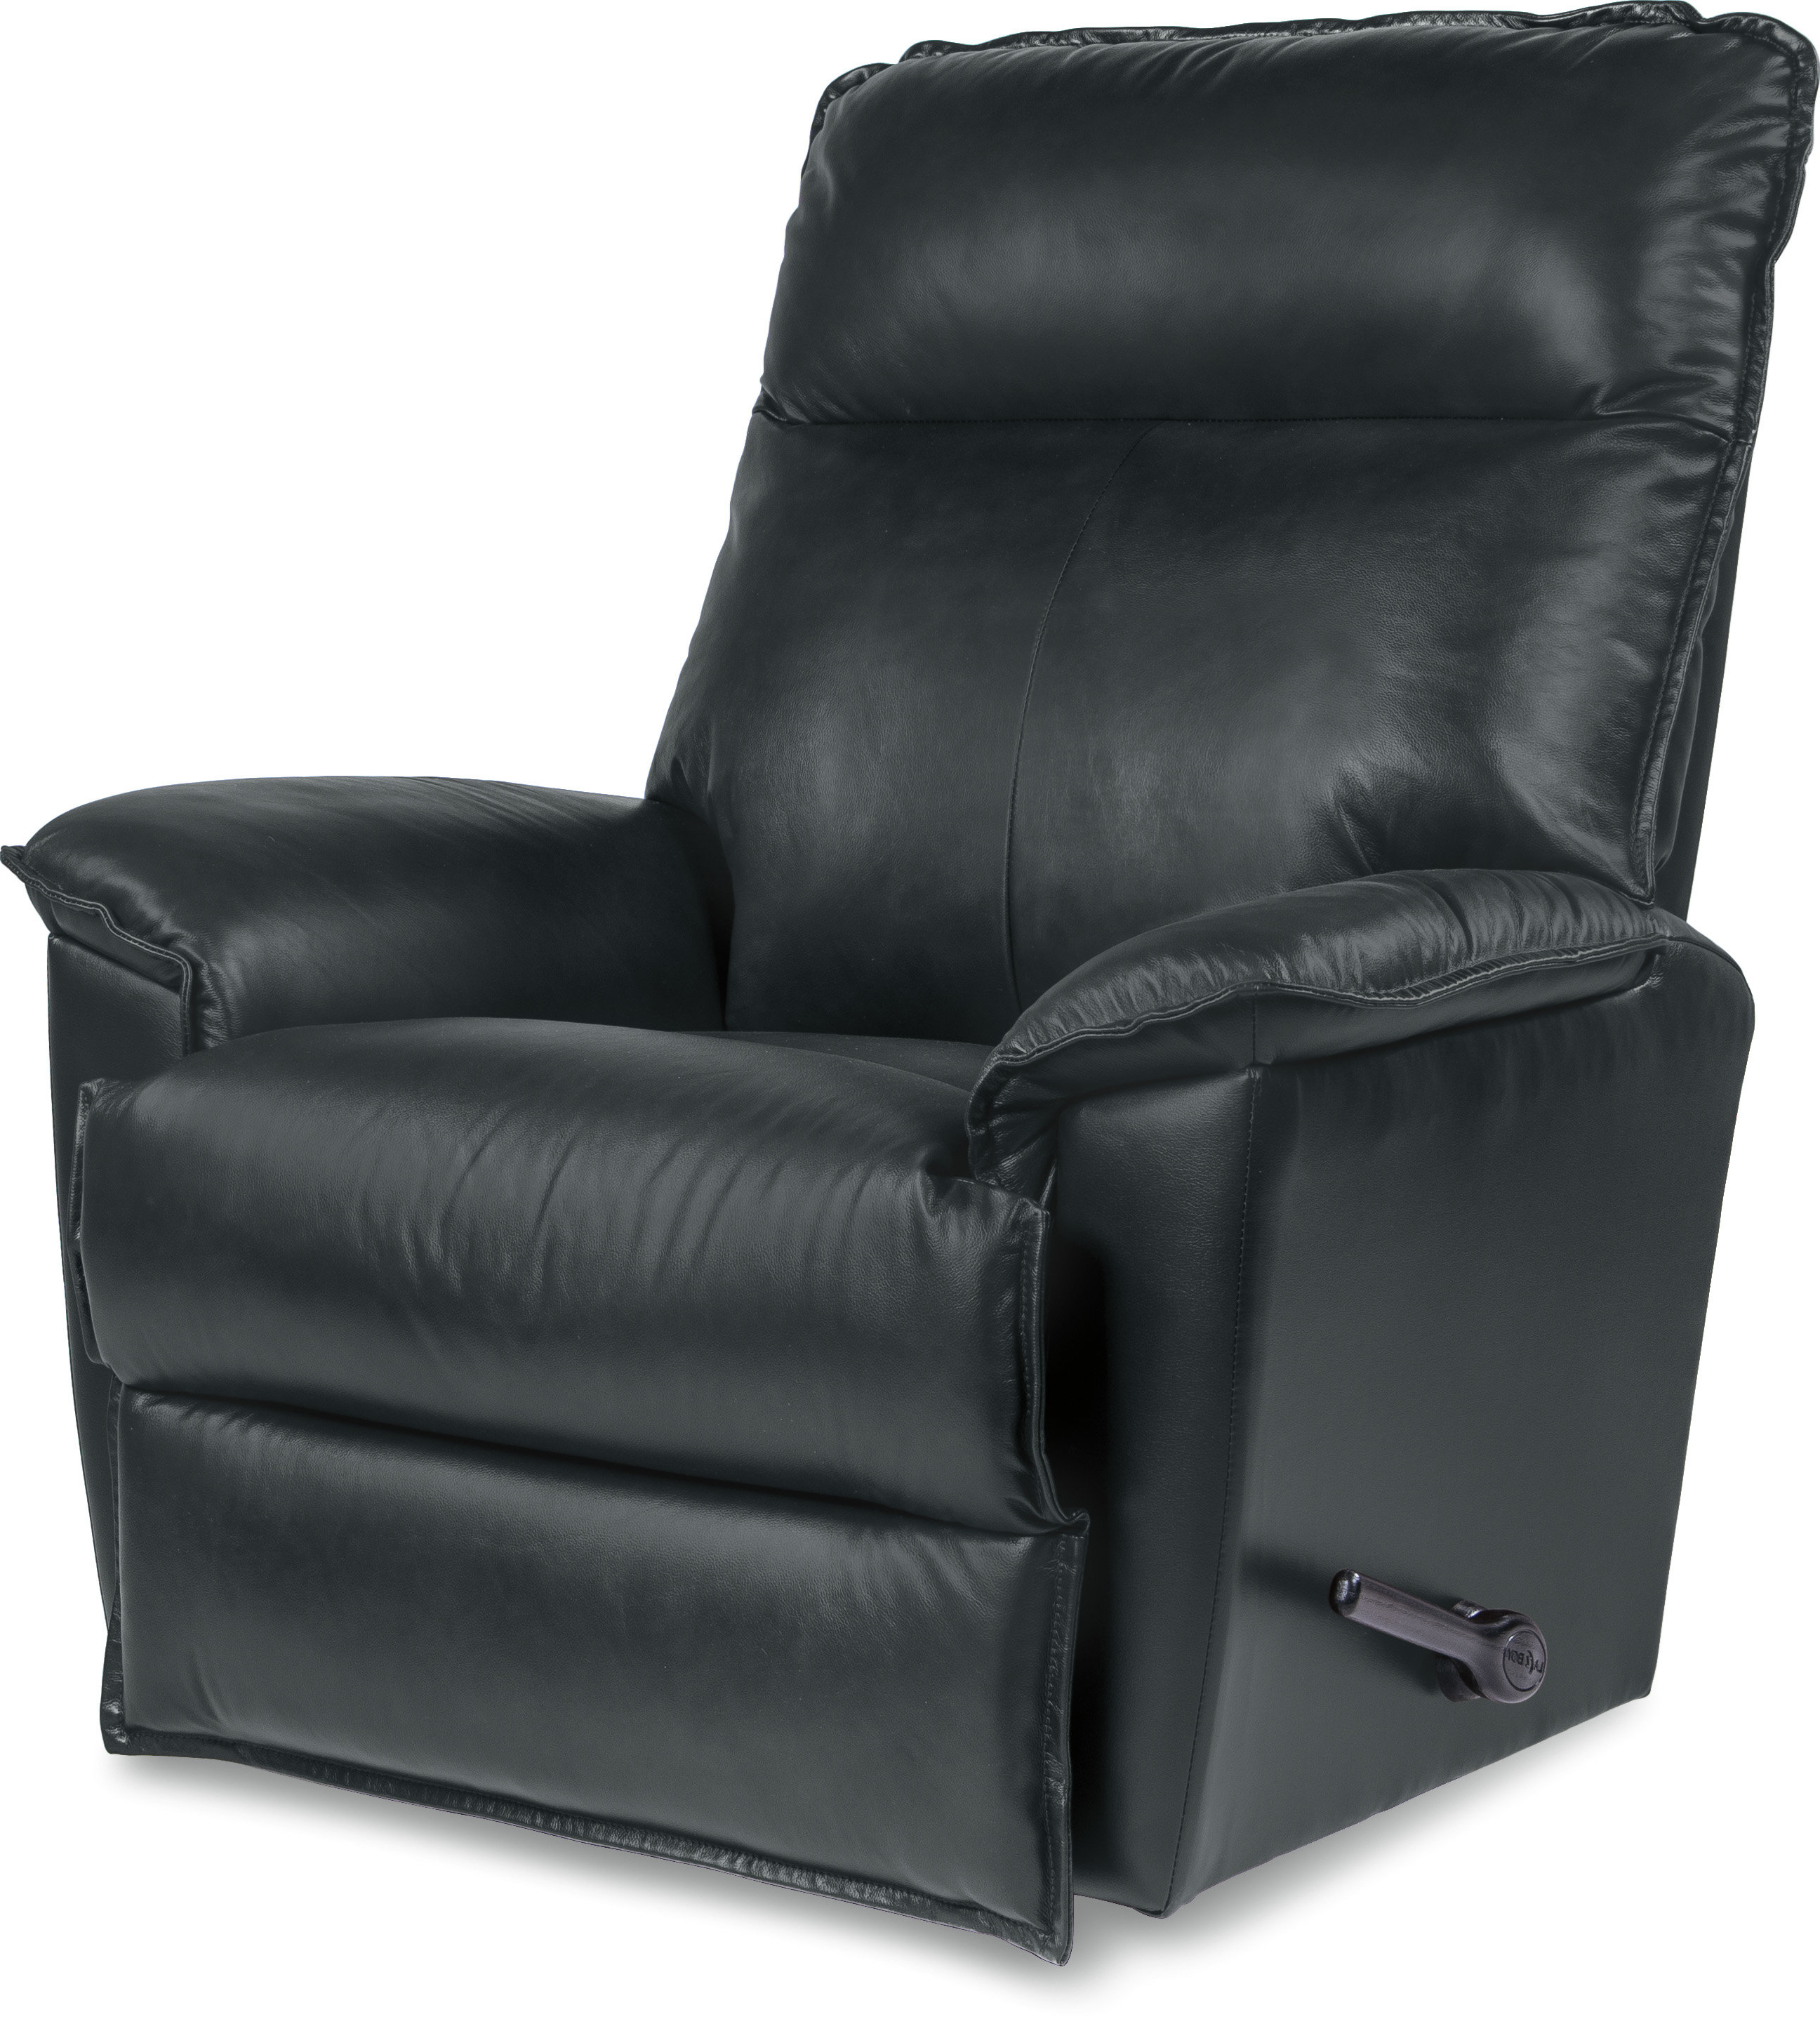 Fashionable La Z Boy Jay Manual Rocker Recliner & Reviews (Gallery 14 of 20)